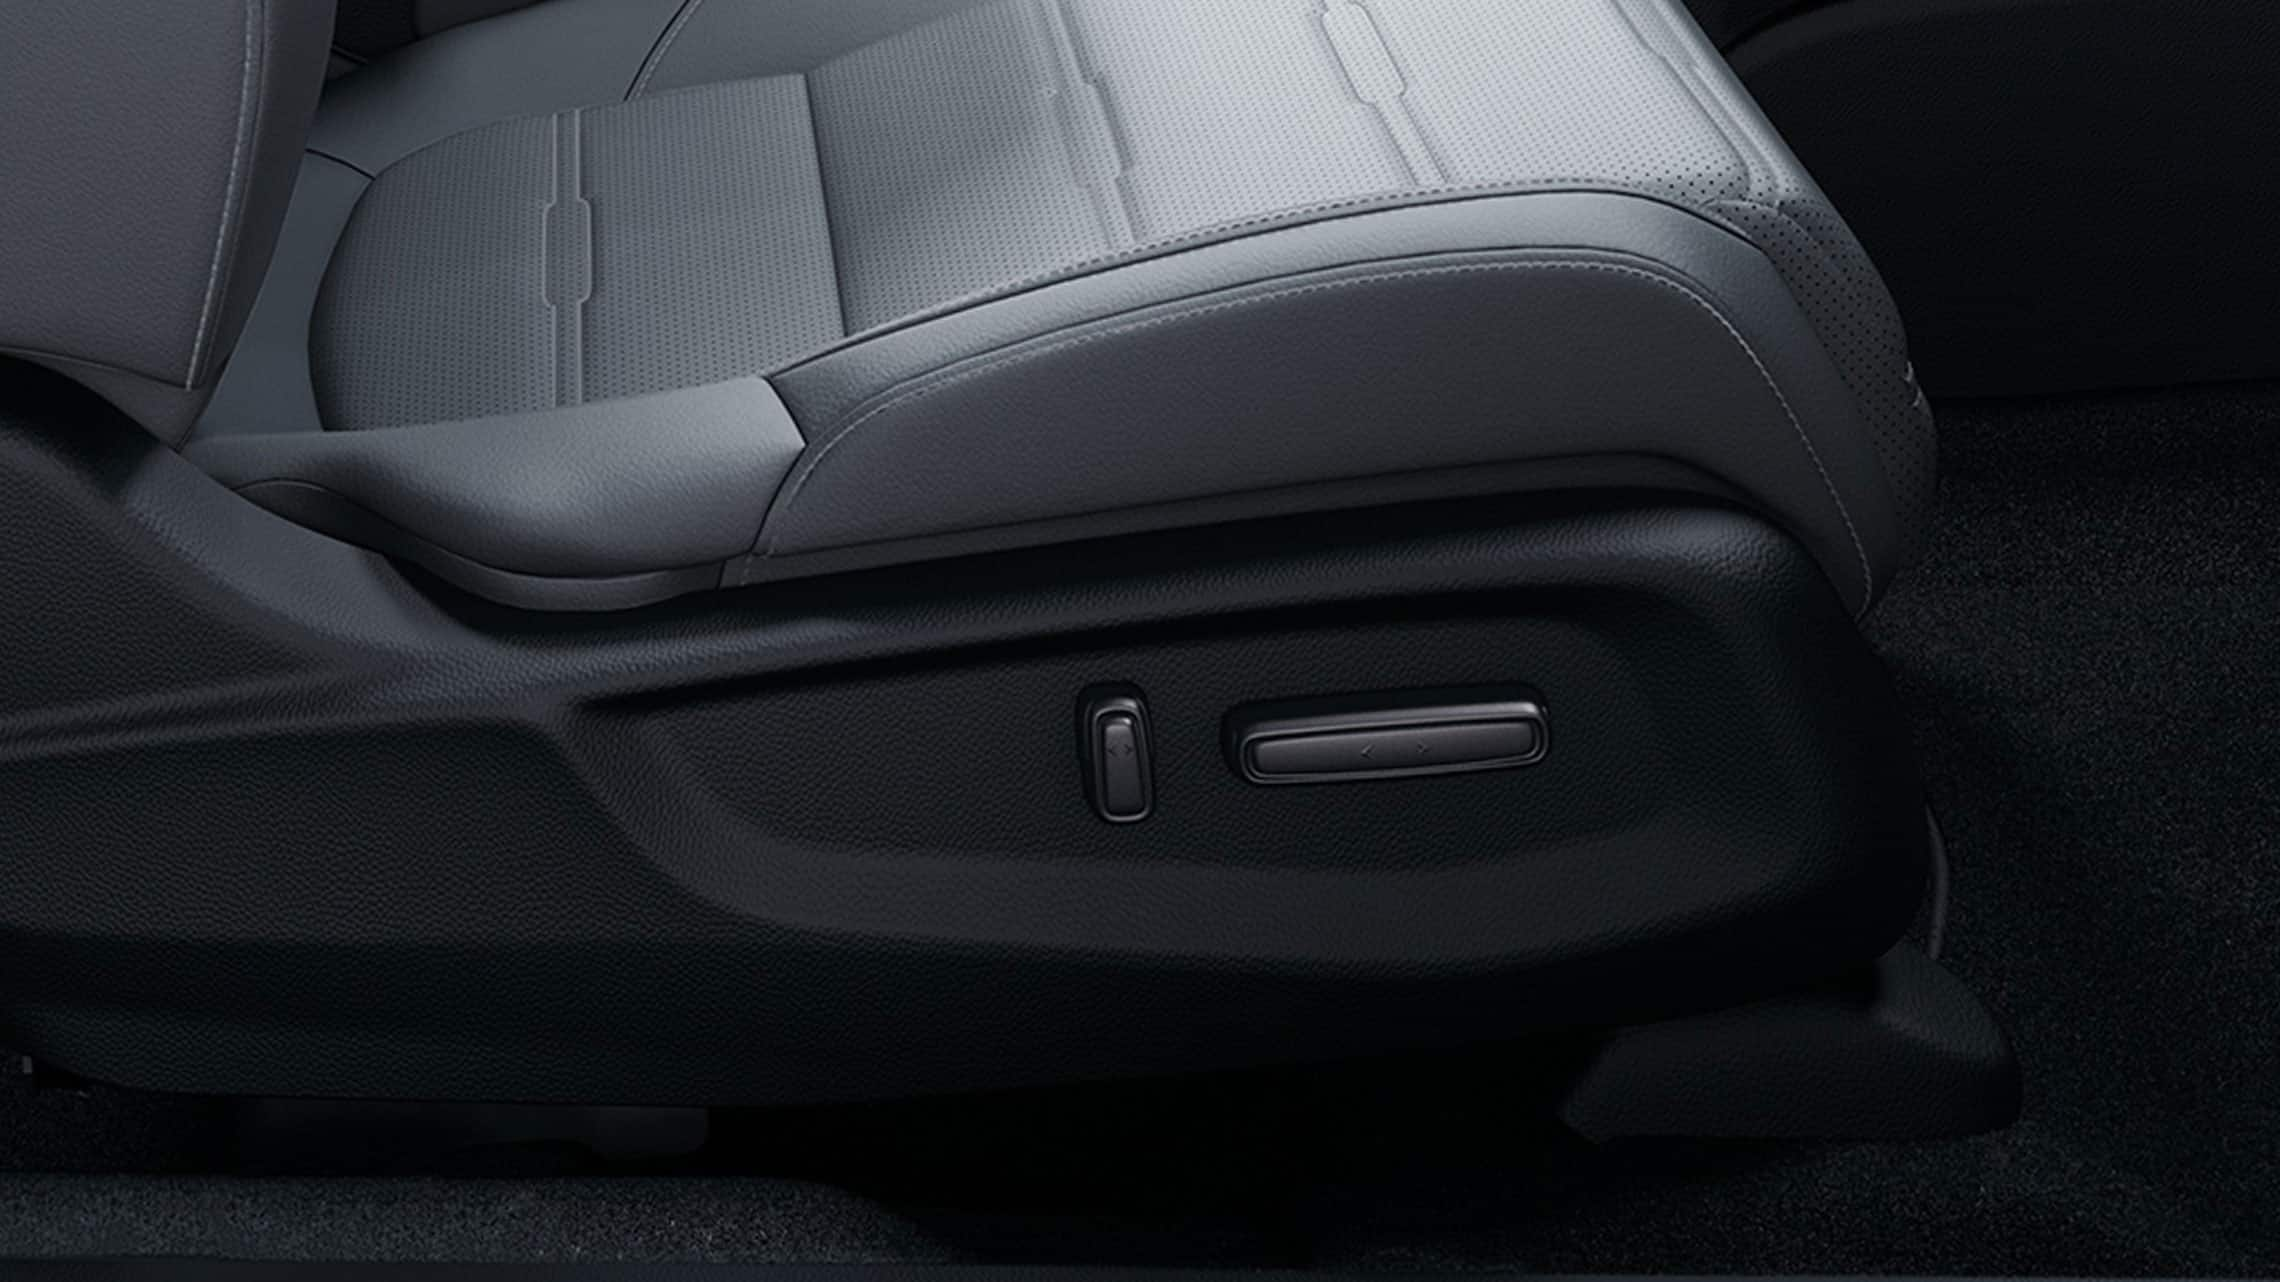 Power-adjustable front passenger seat detail in the 2021 Honda CR-V.